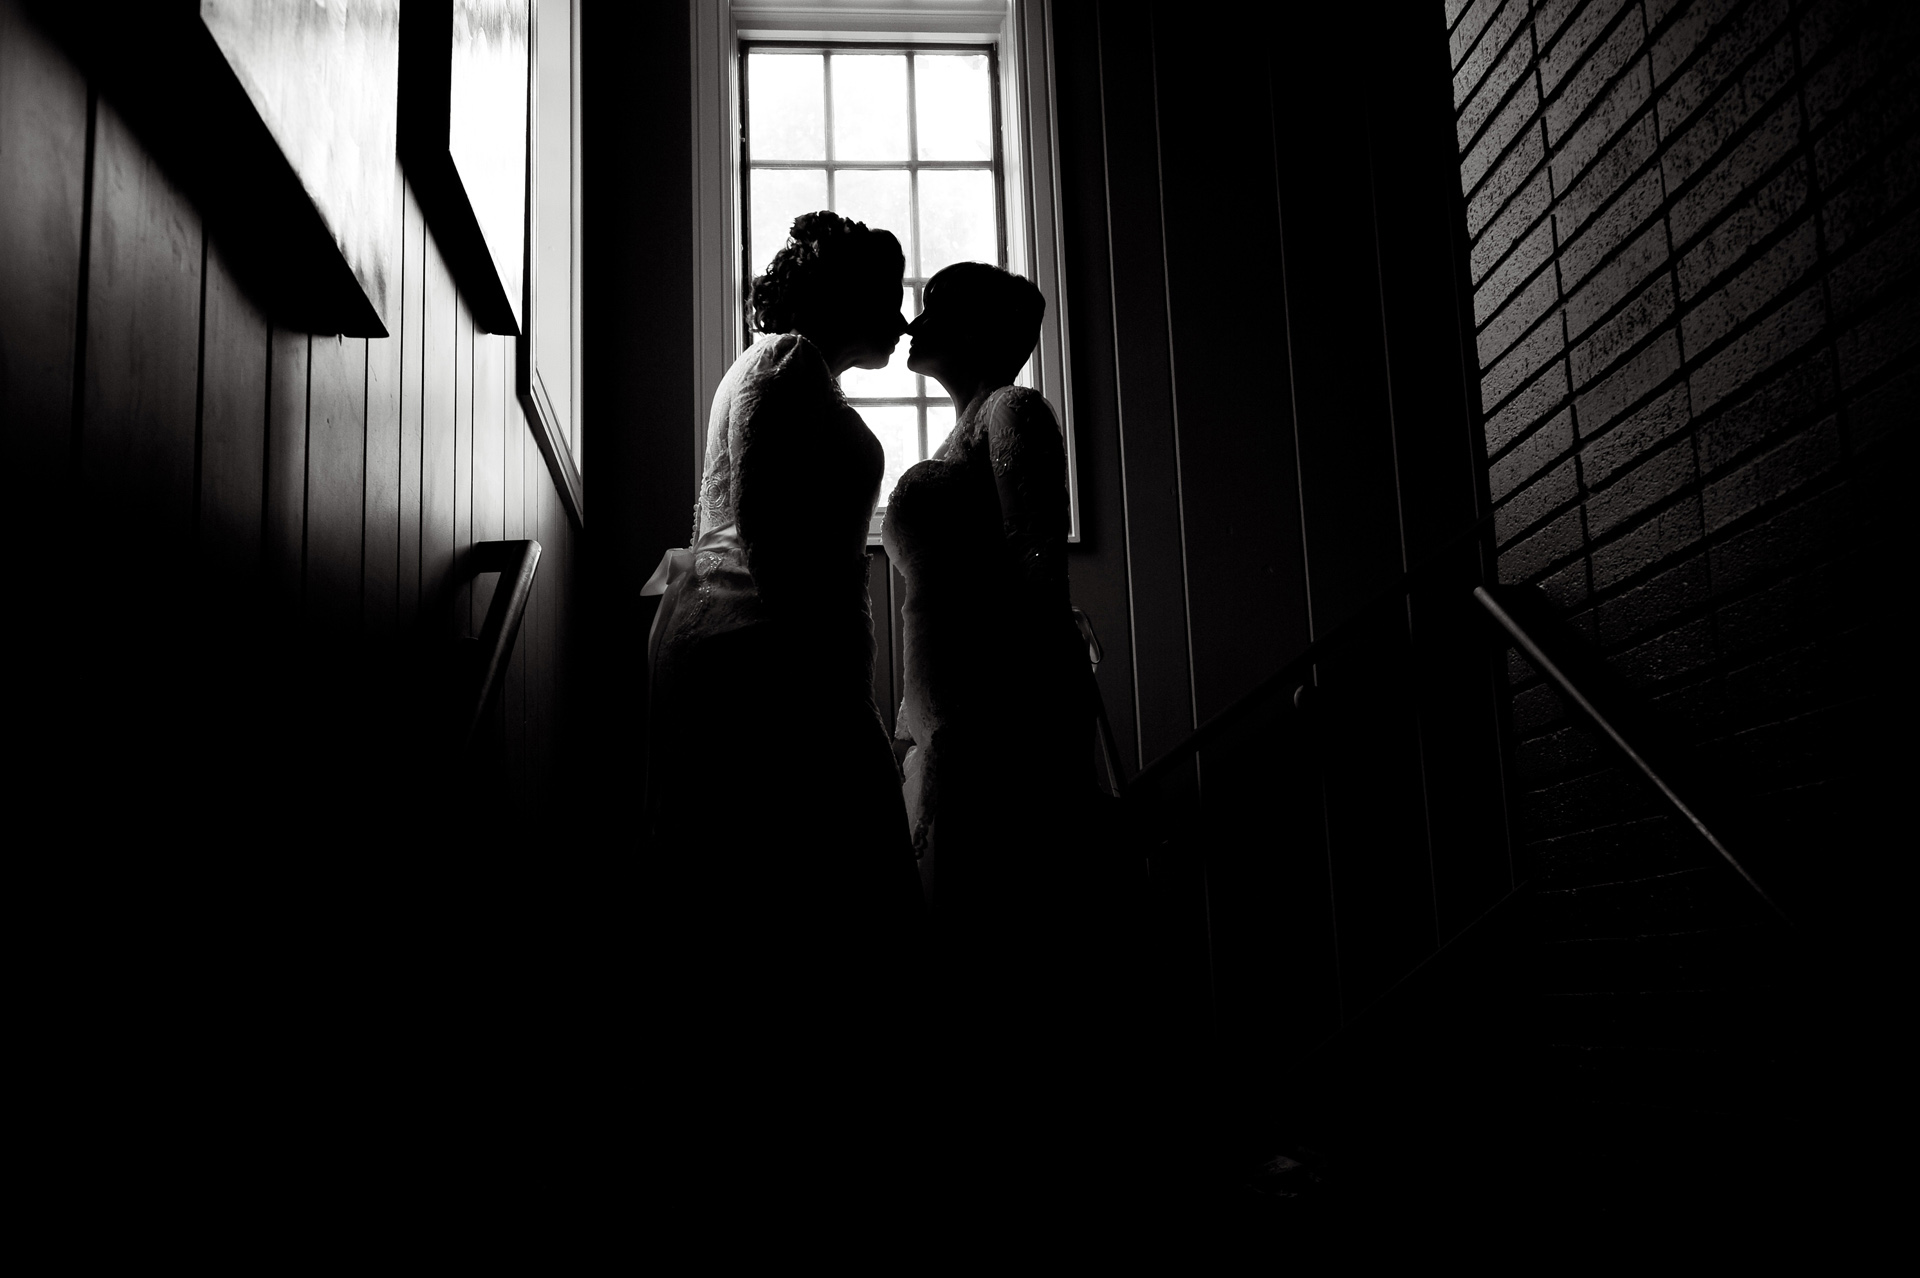 Michigan same sex wedding wedding photographer's photo of Jennifer and Emily kiss in silhouette at the restaurant after their Michigan same sex wedding in Livonia, Michigan.